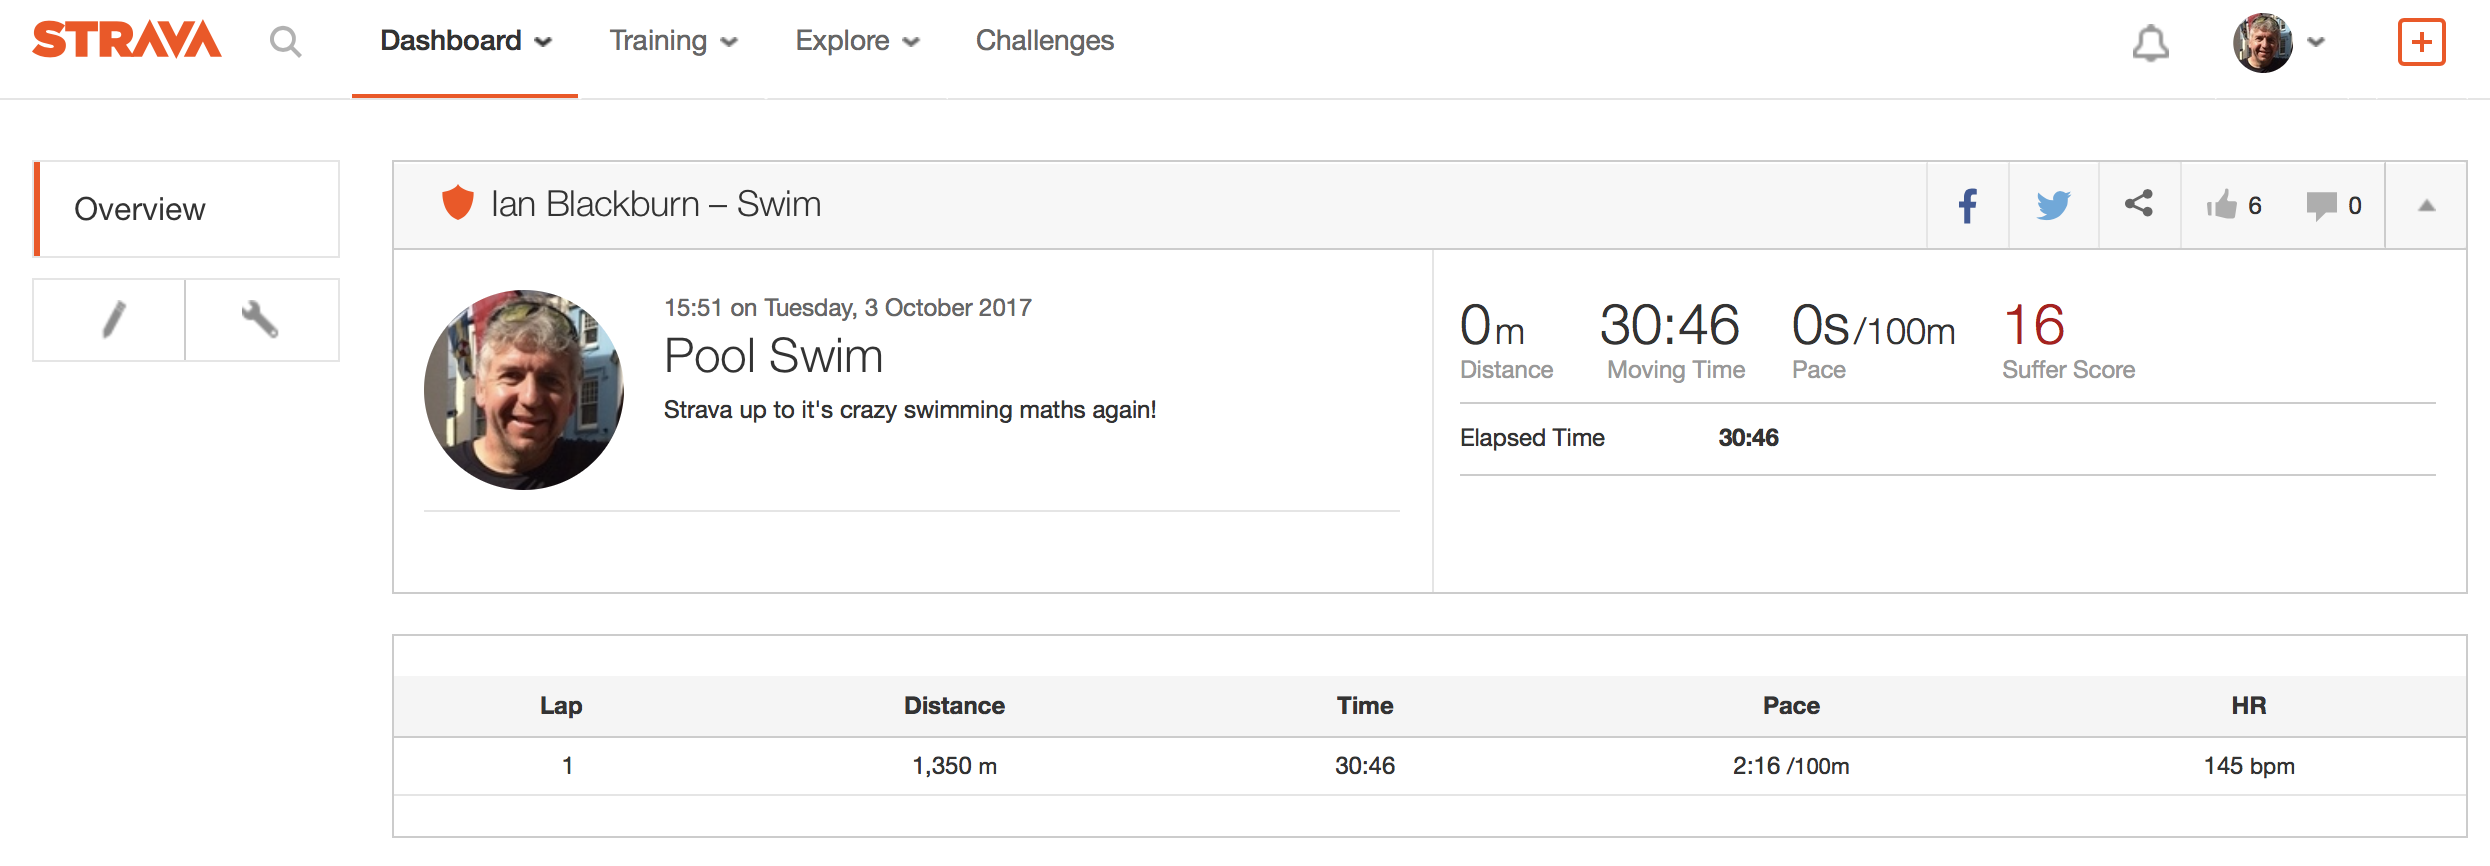 Come on Strava you can do better than this!